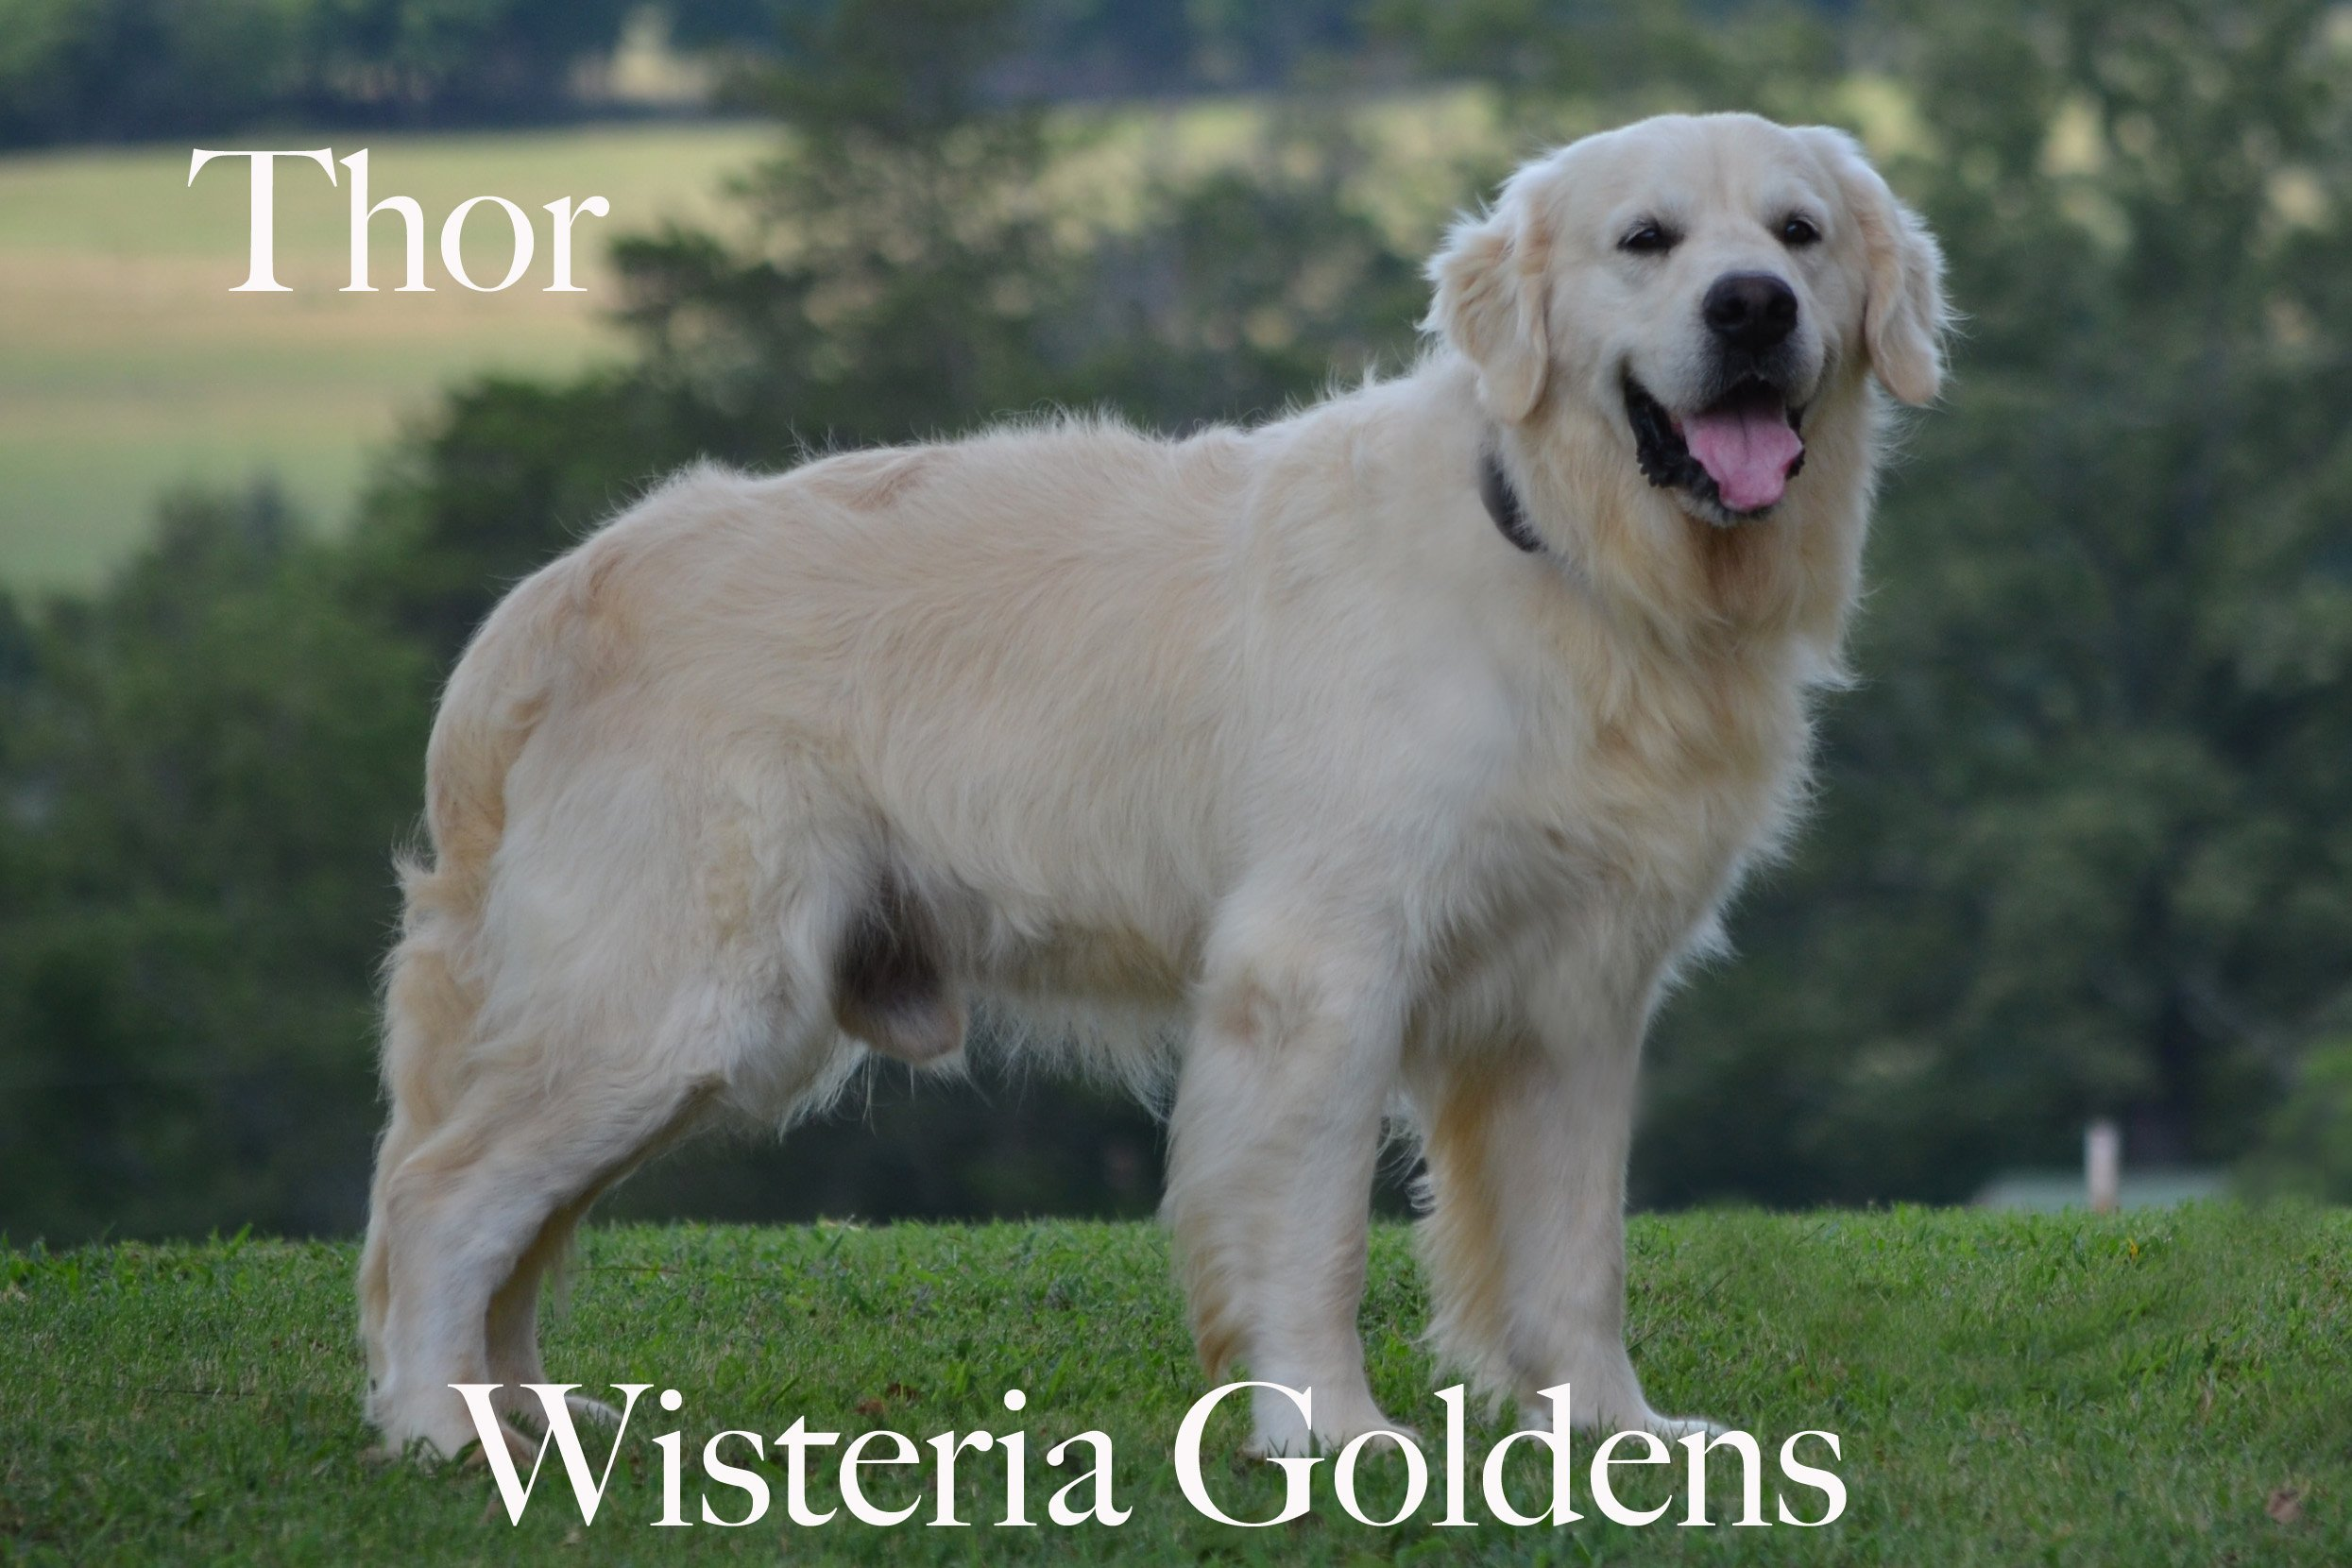 Thor-0464-thor-full-english-creme-golden-retrievers-wisteria-goldens